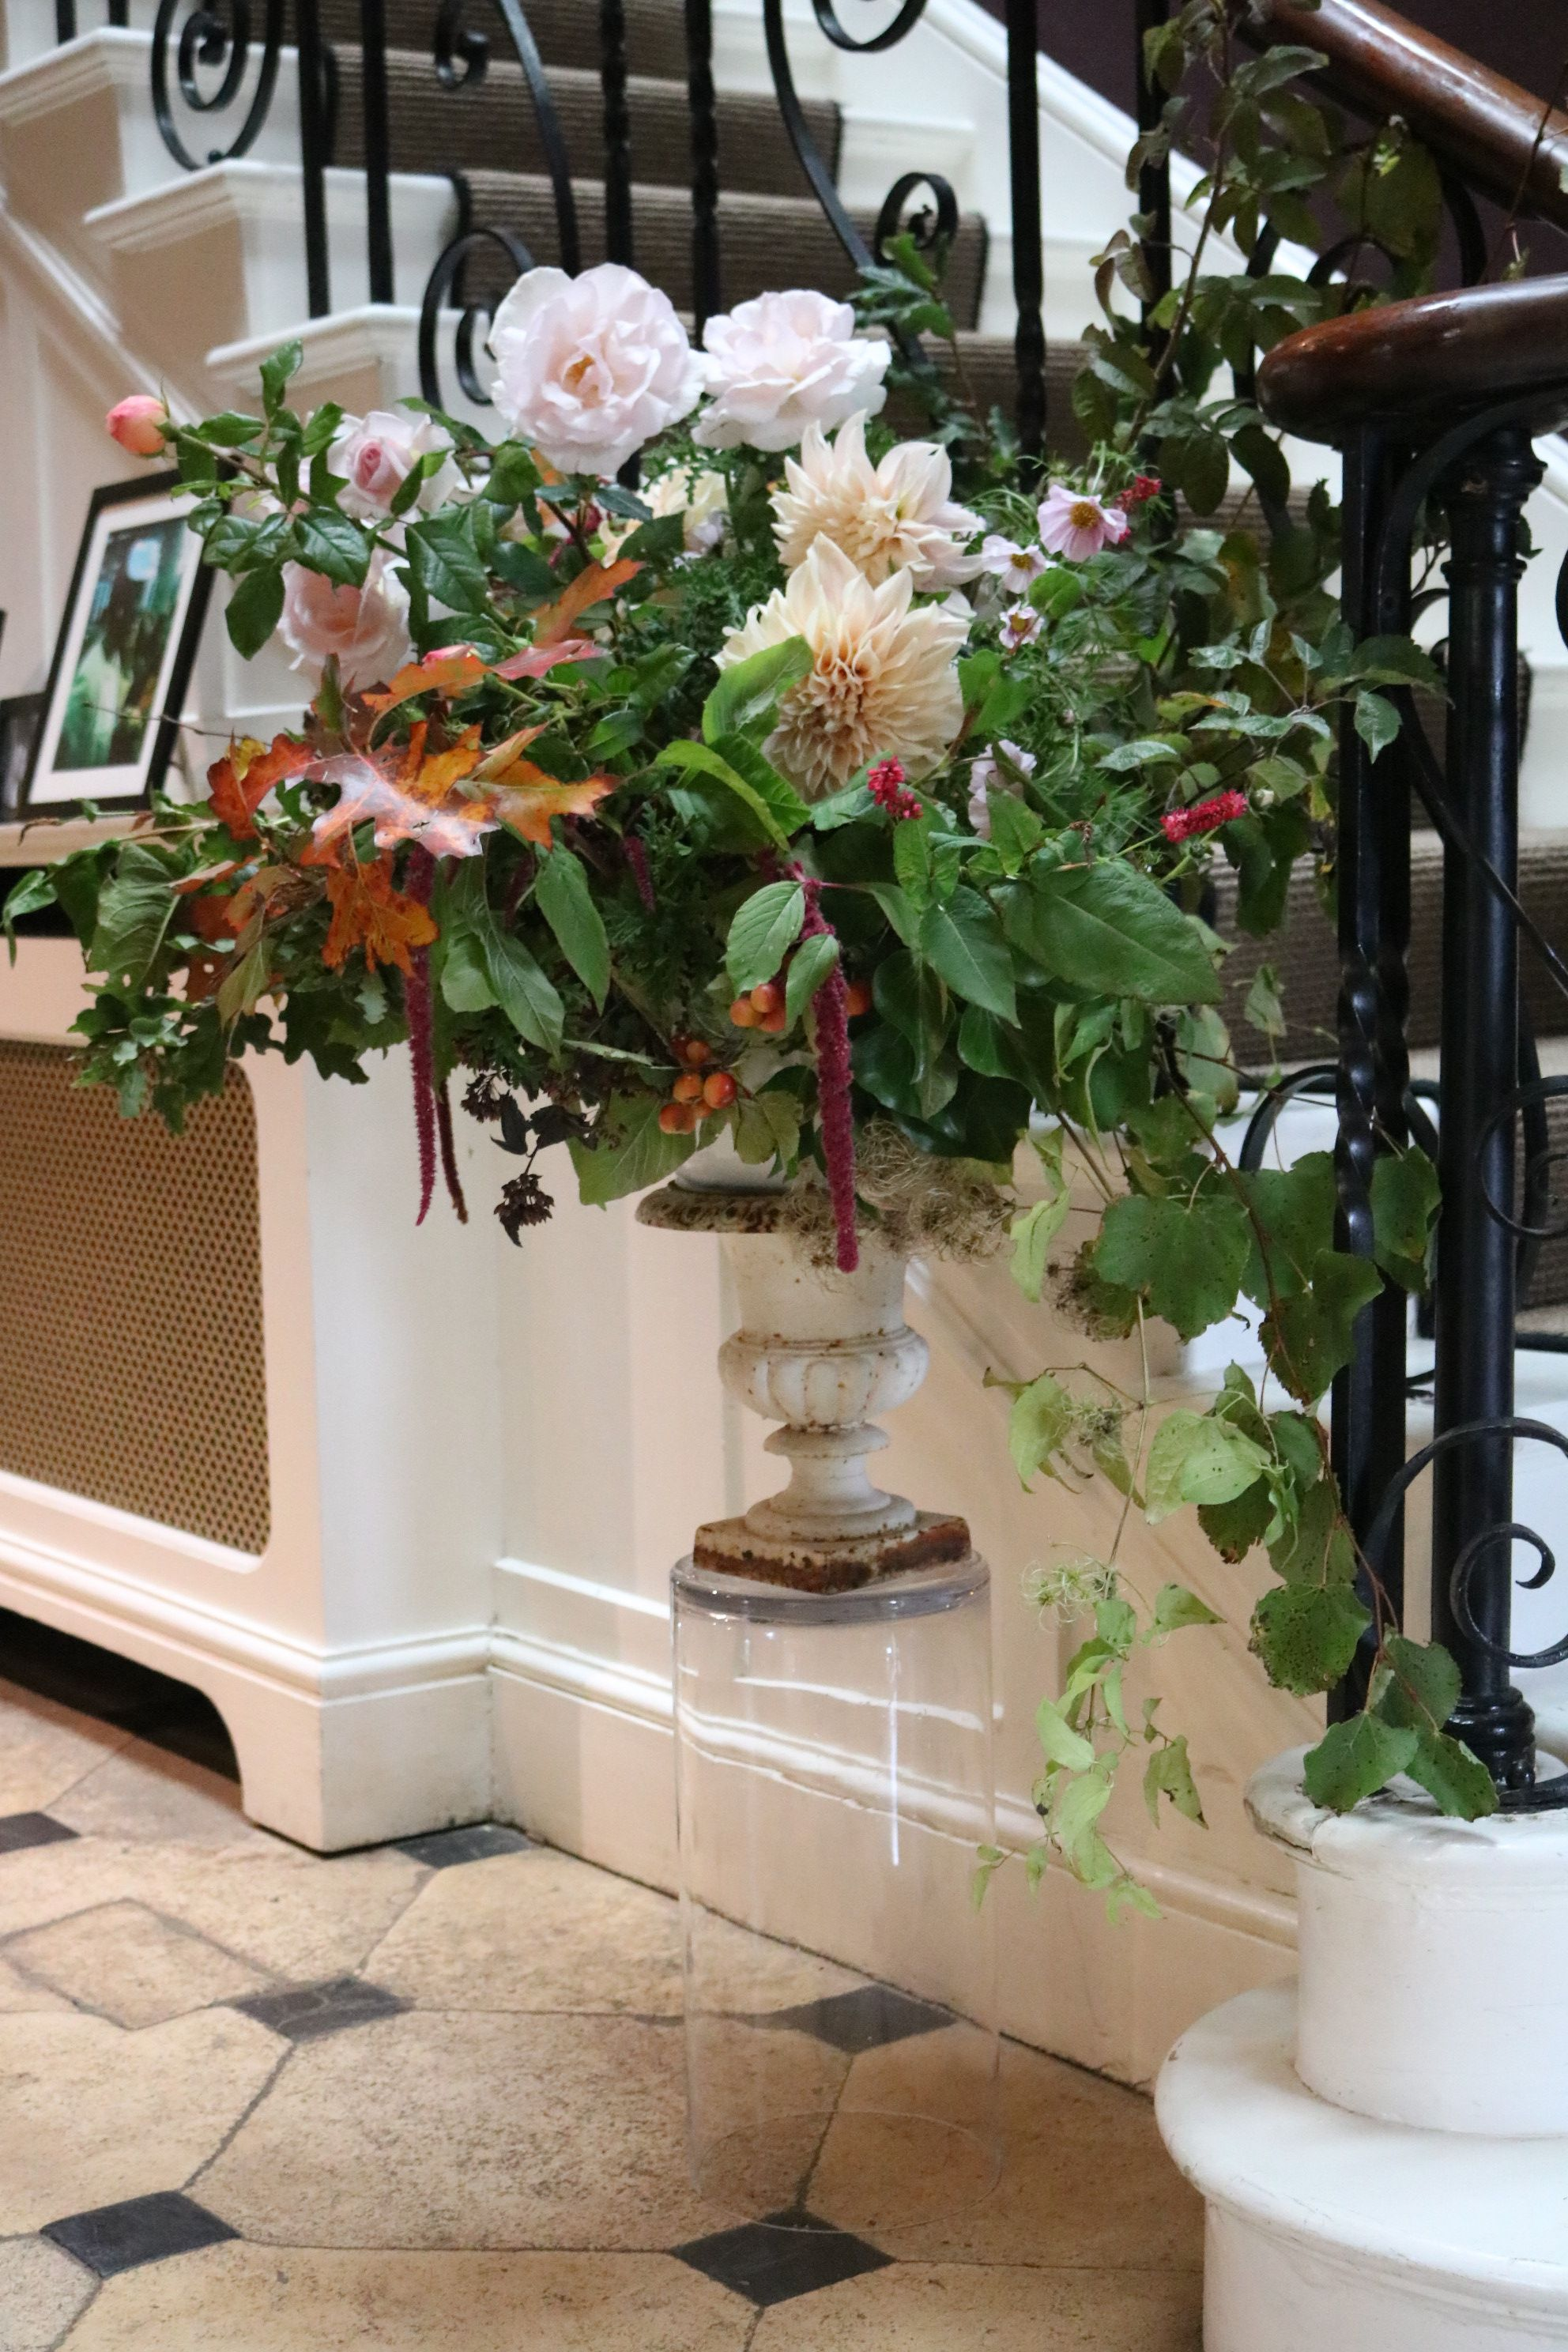 No floral foam in this classic country house urn full of